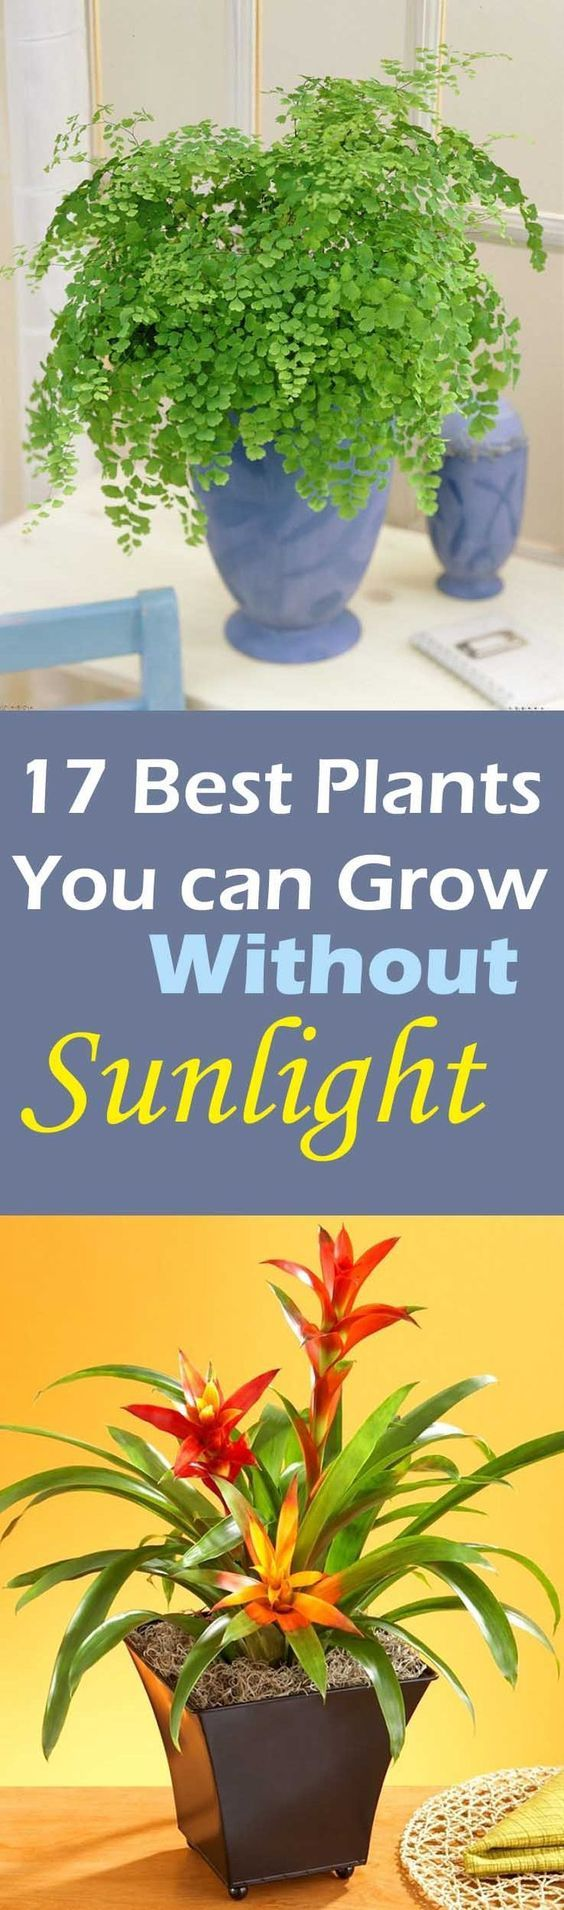 1000 ideas about low light plants on pinterest indoor plants low light indoor house plants - House plants that grow in low light ...